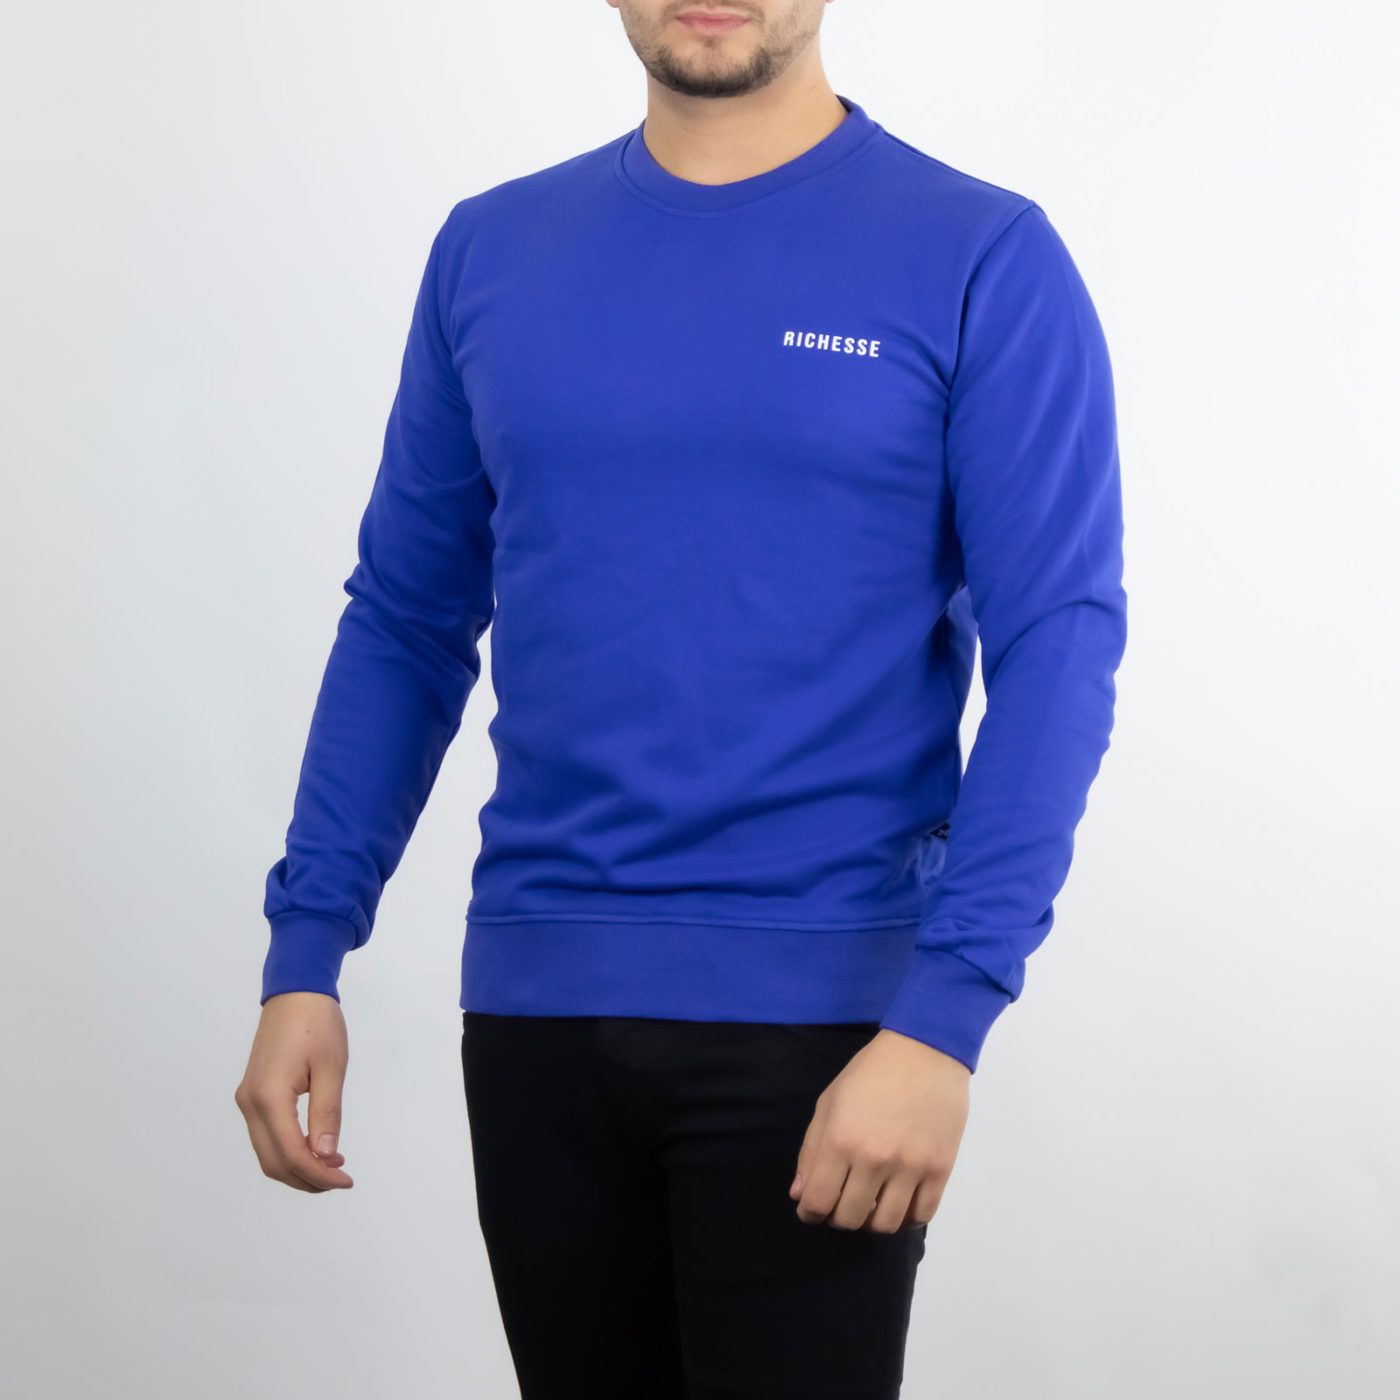 Richesse-Crewneck-Blue-1